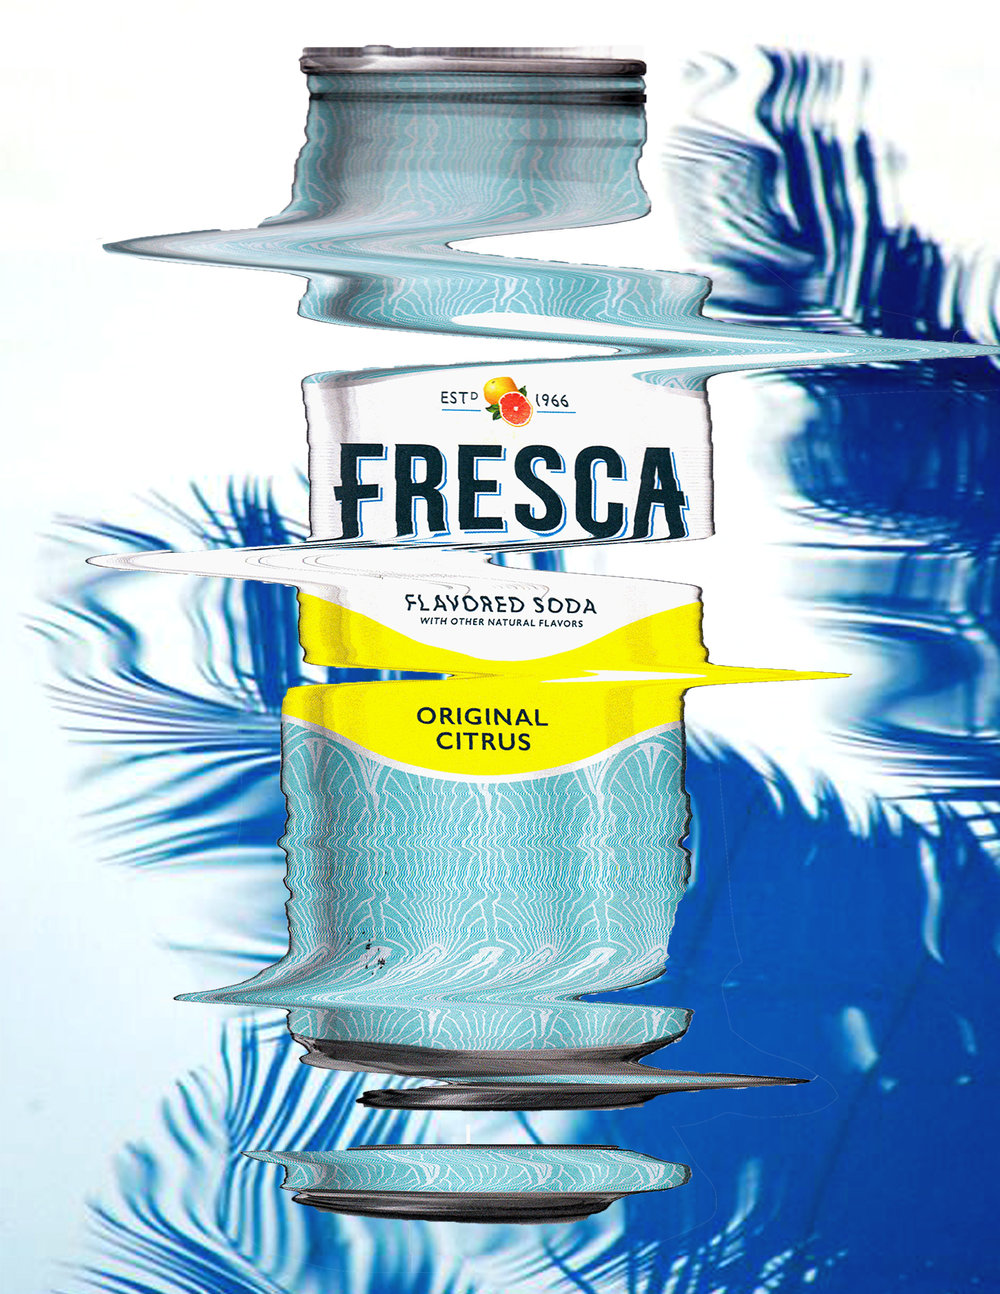 CC_Fresca_Exploration_5v2.jpg